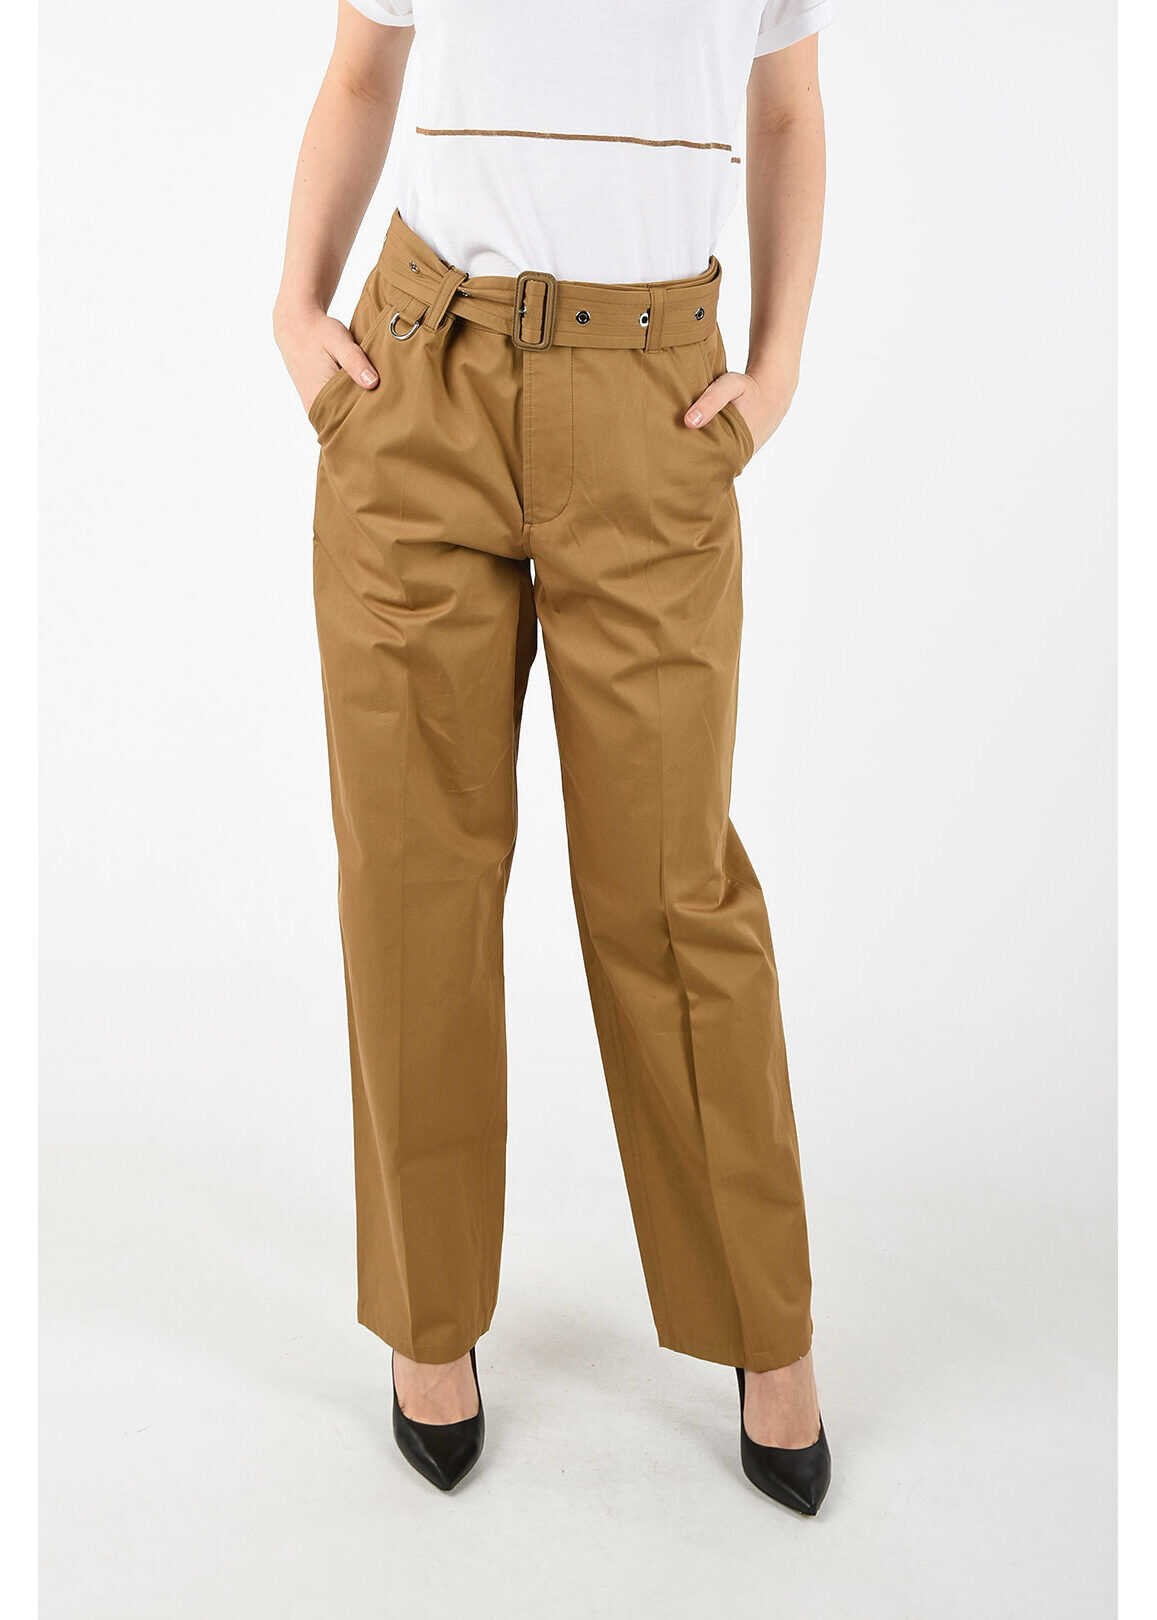 Burberry pants with belt BROWN